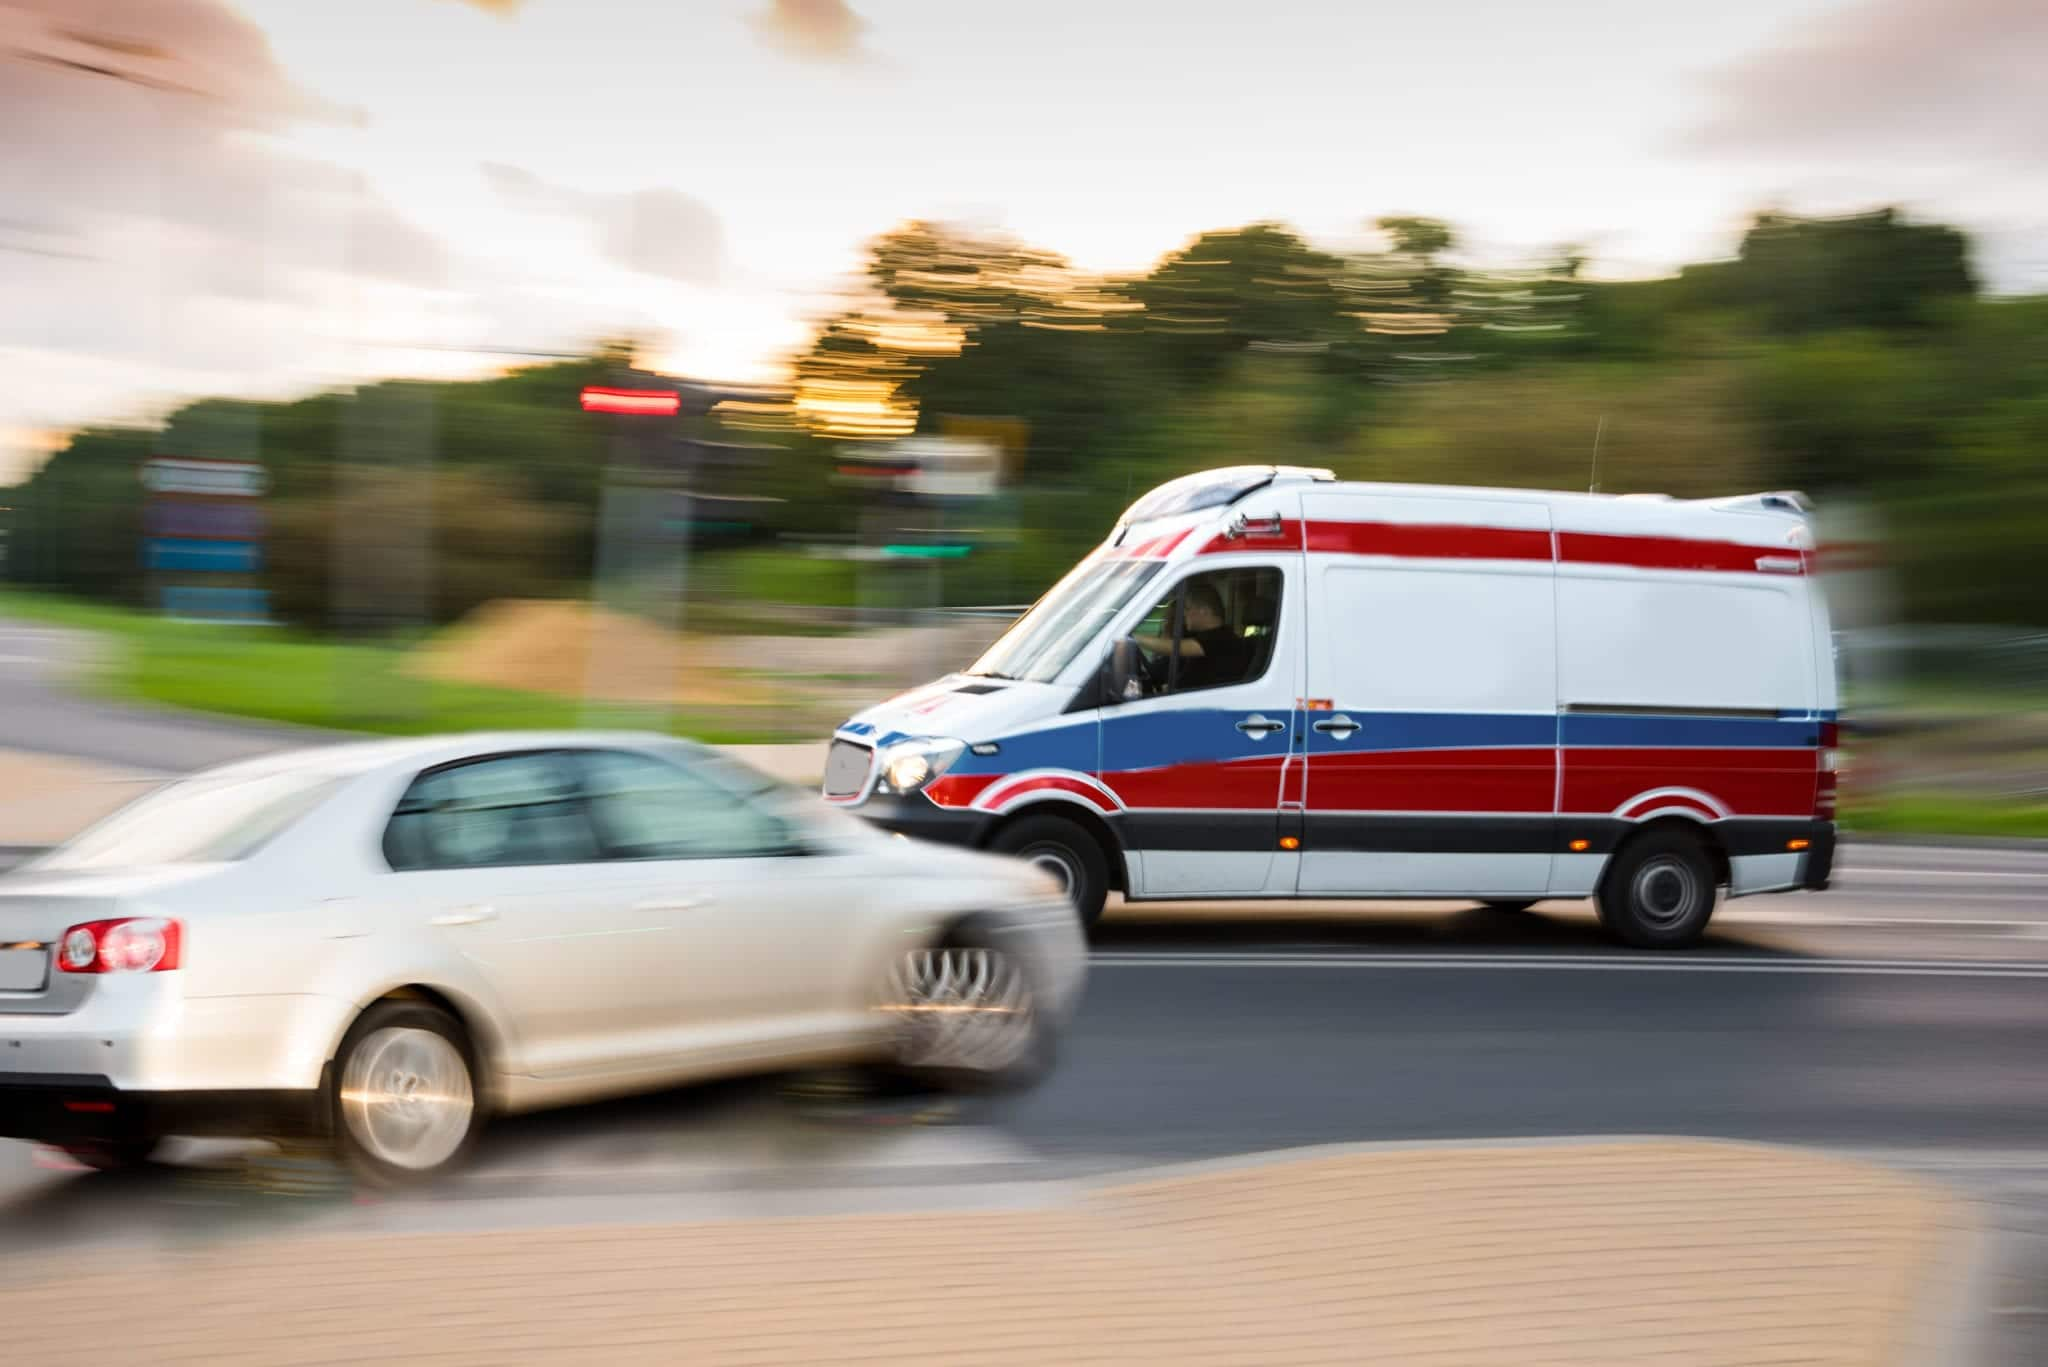 My Florida Ambulance Got Into a Wreck — Can I Sue?